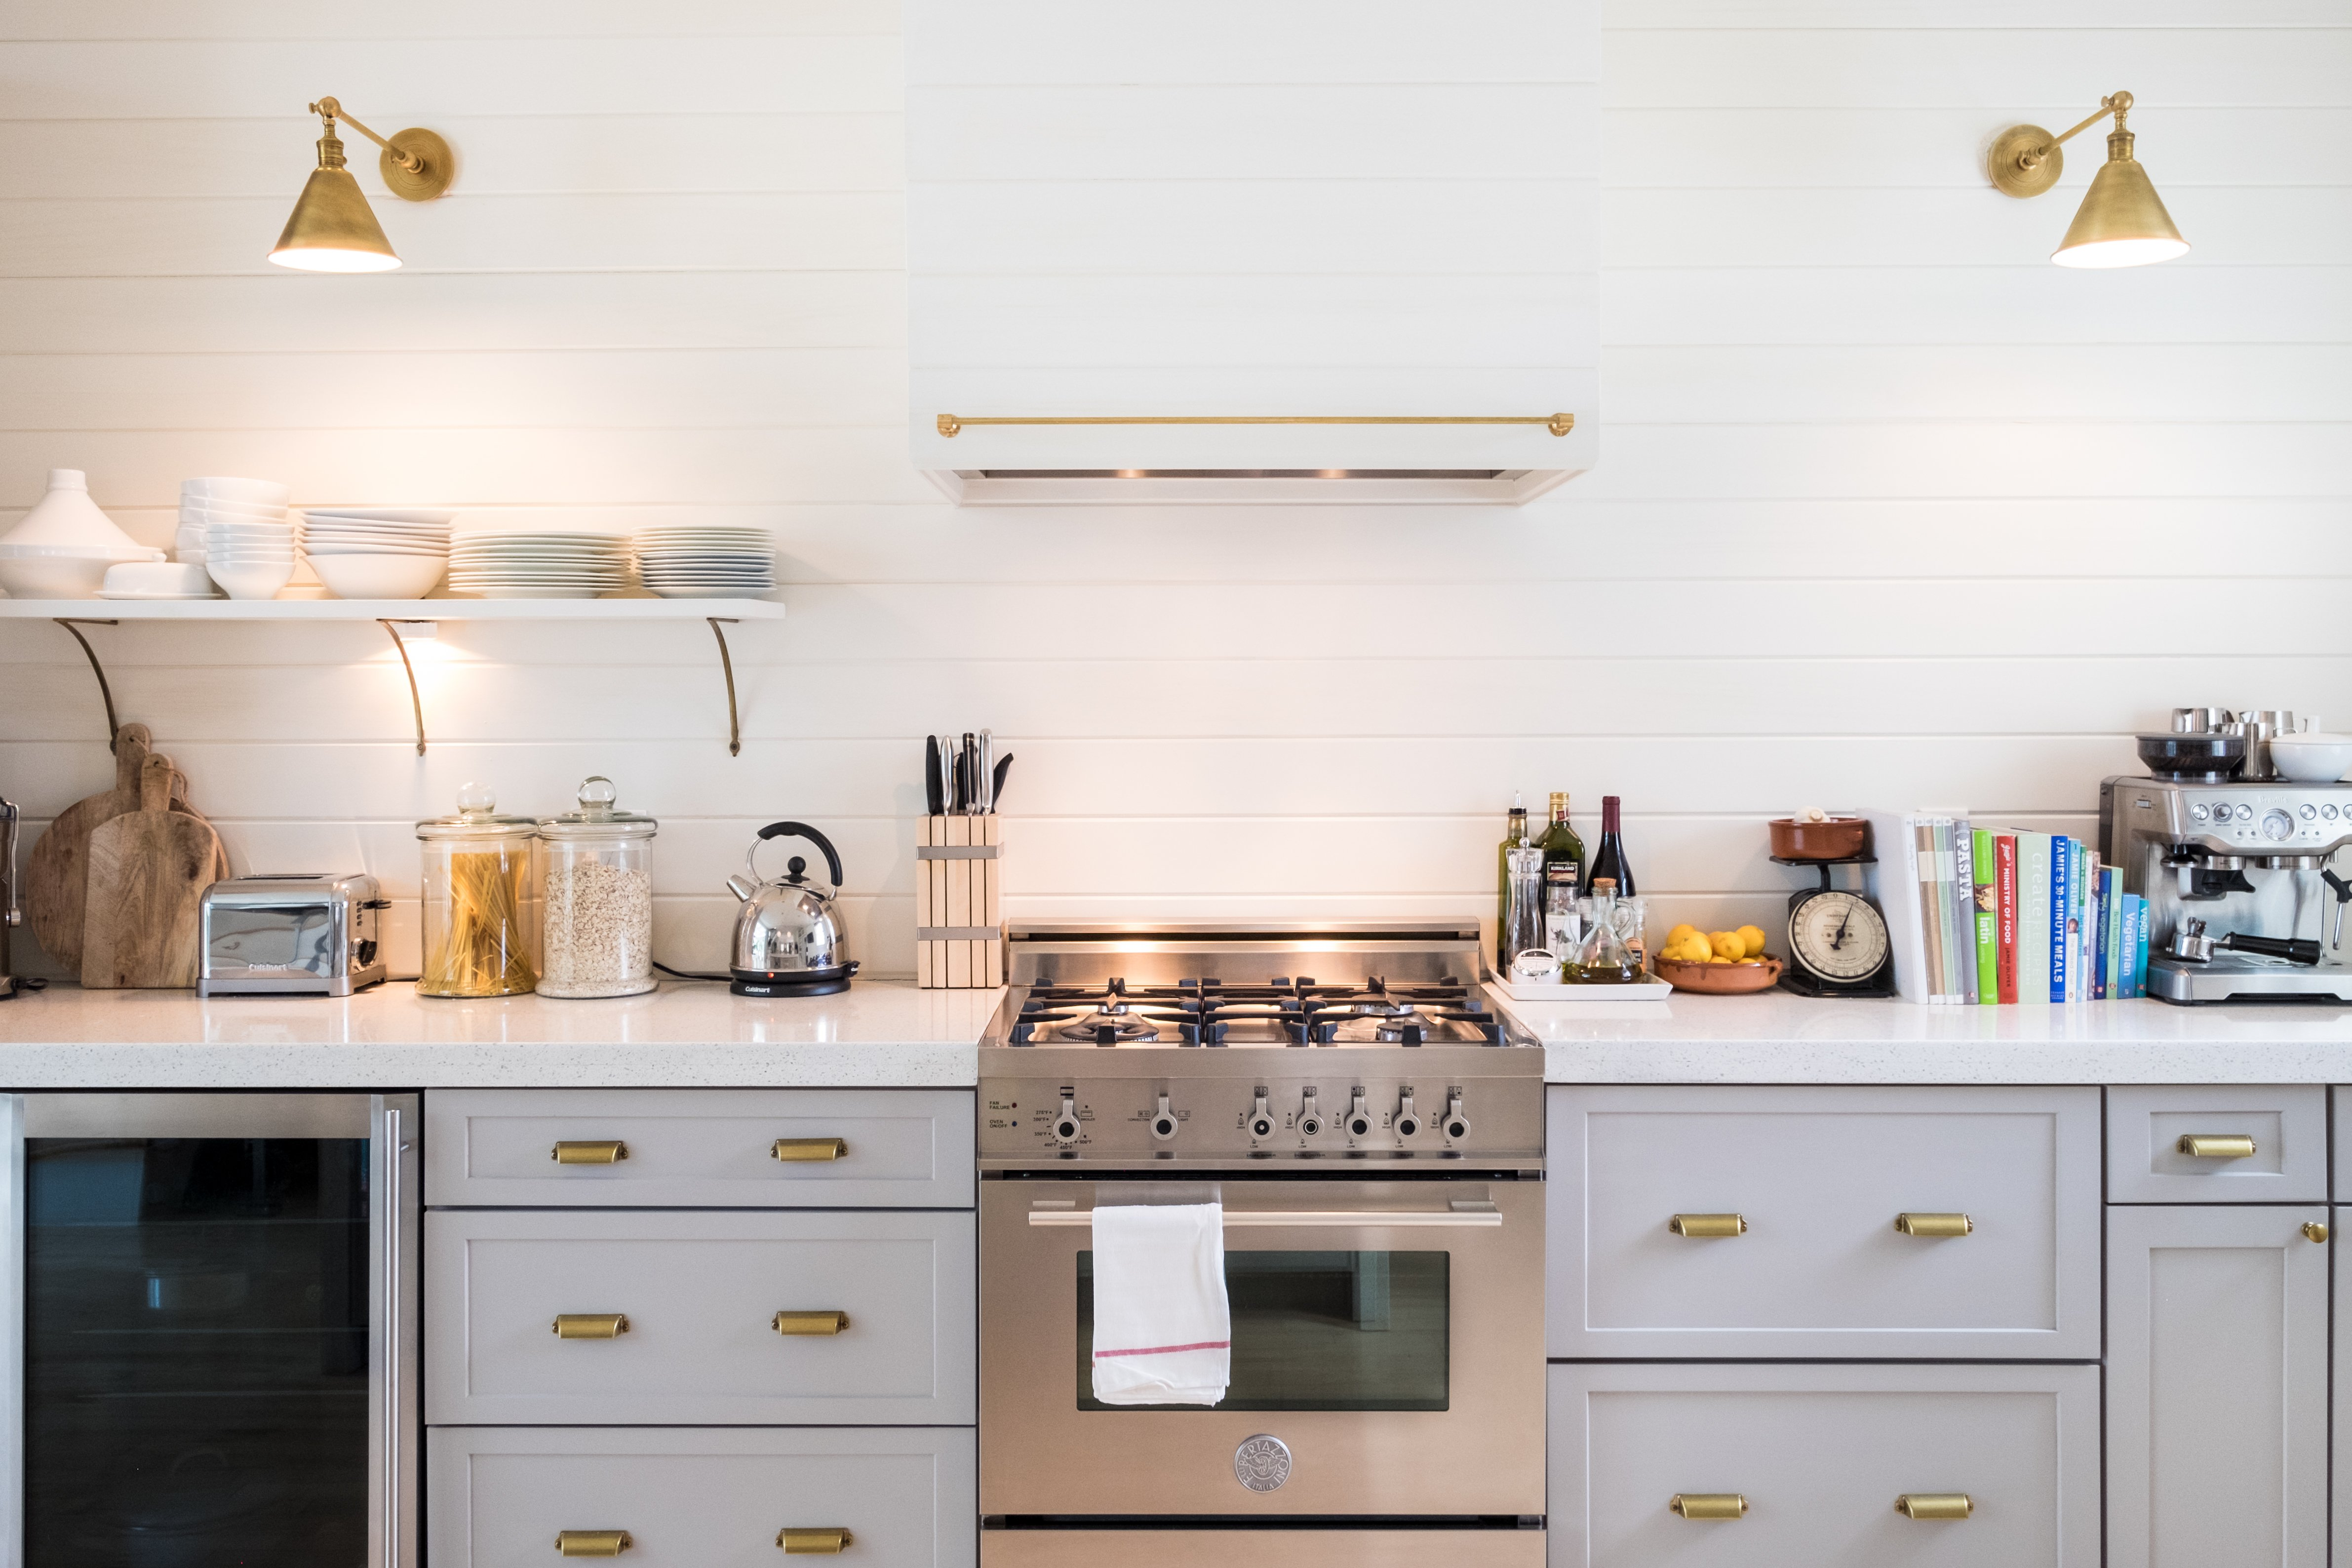 Do New Home Appliances Affect Resale Value | Apartment Therapy